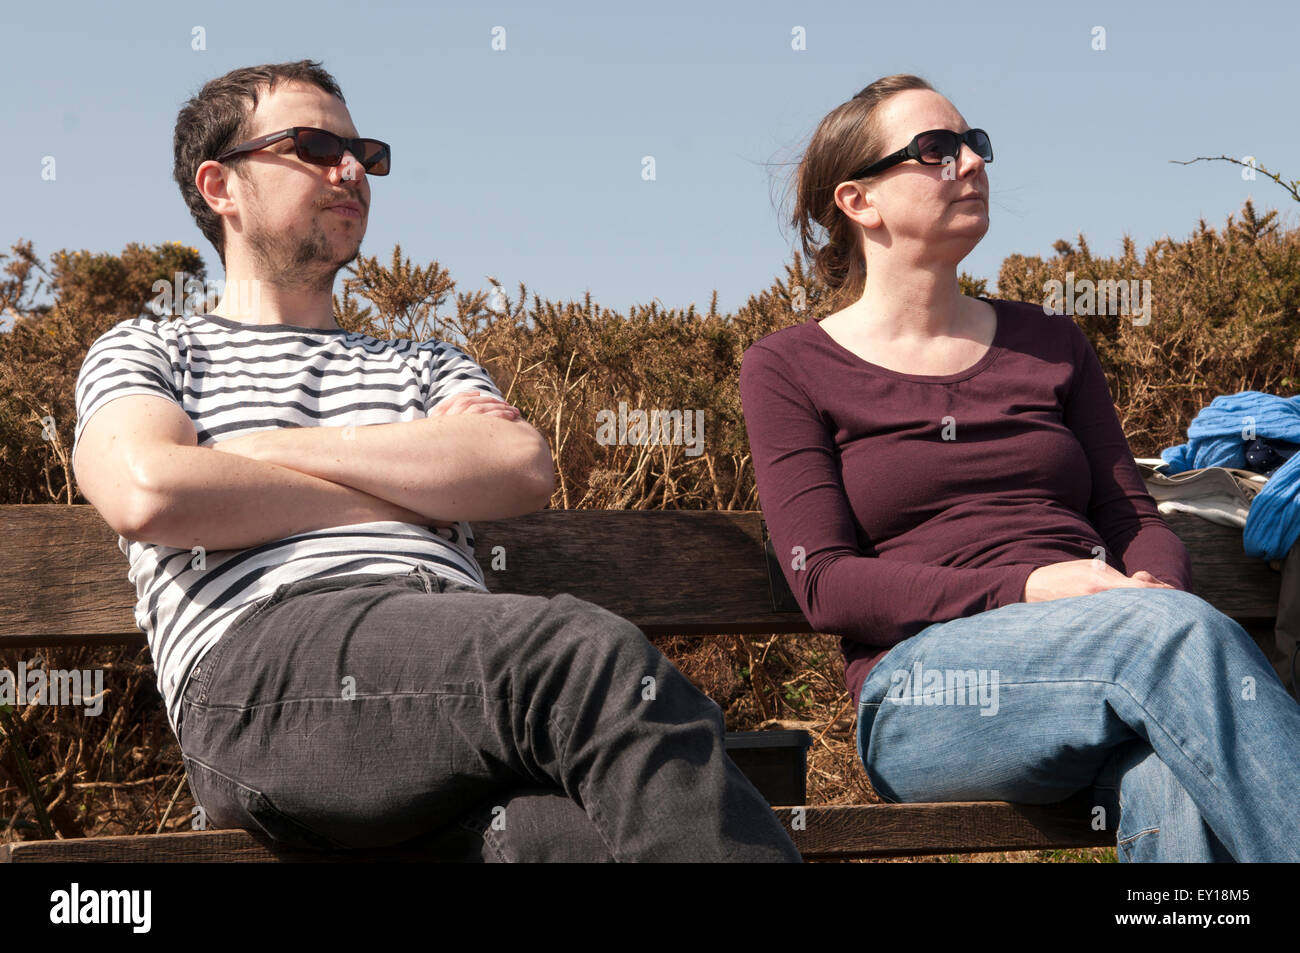 Couple sitting on a bench apart looking annoyed with each other - Stock Image